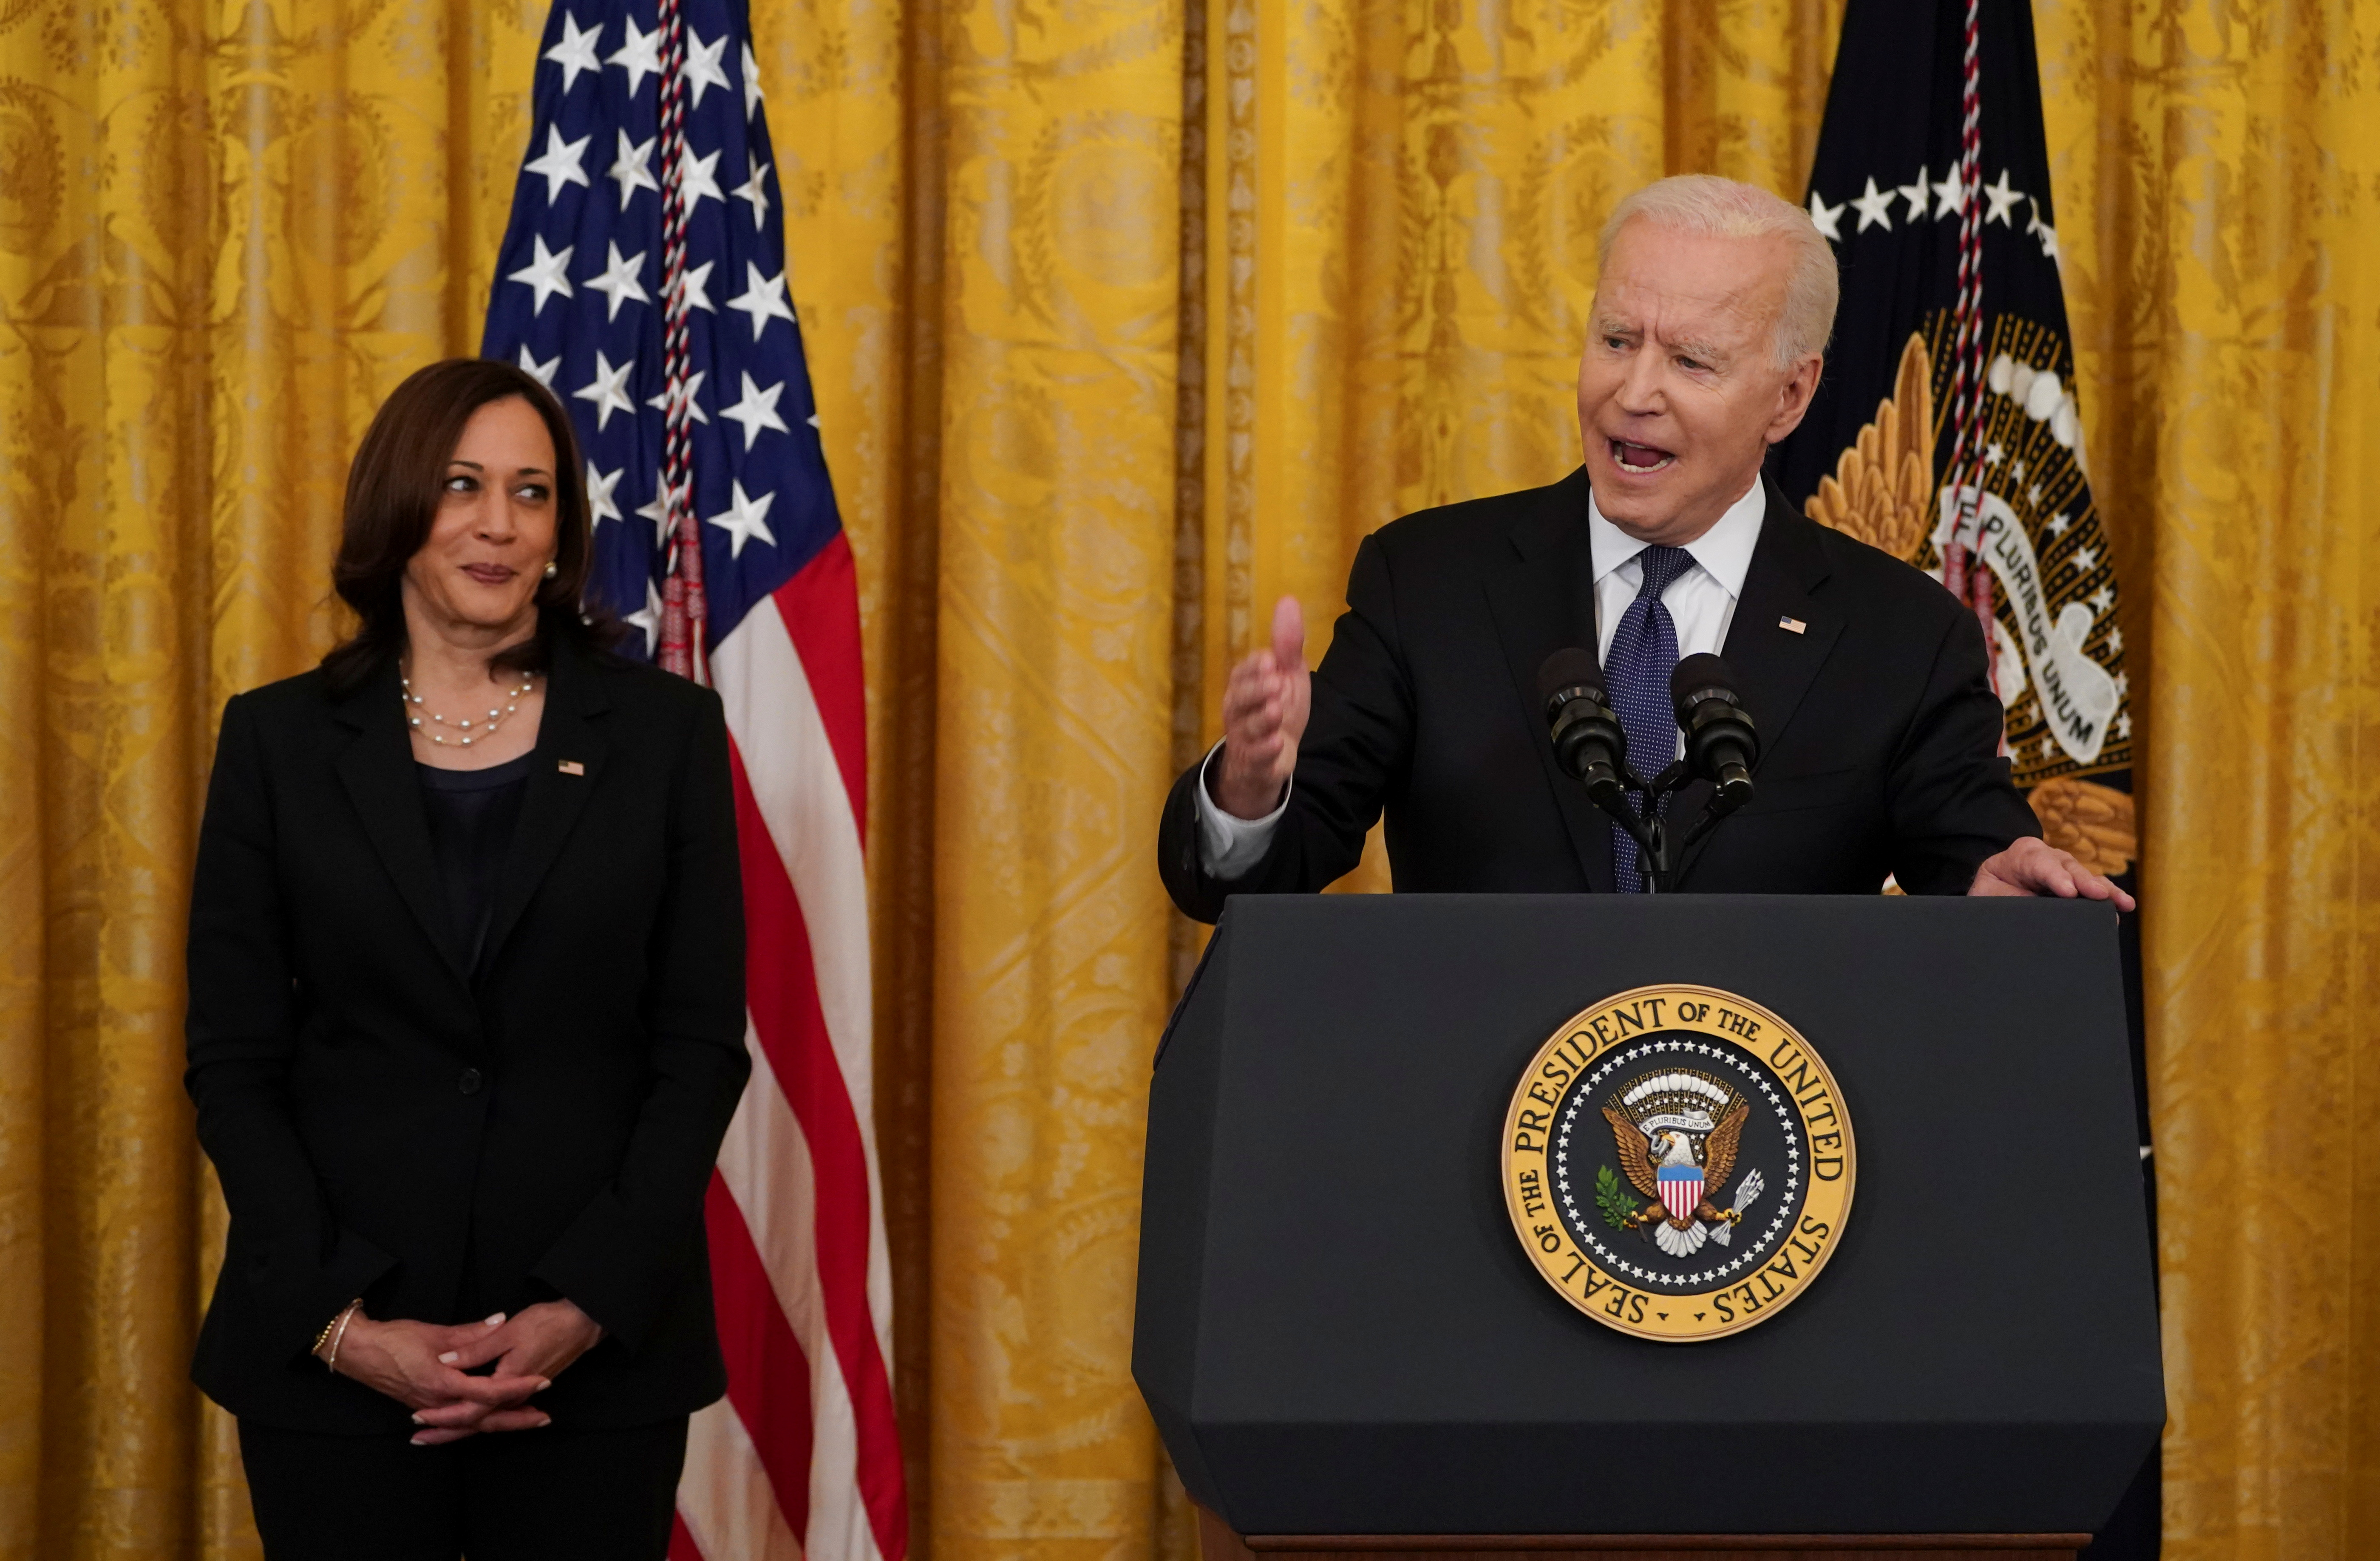 U.S. President Joe Biden speaks next to U.S. Vice President Kamala Harris before signing the COVID-19 Hate Crimes Act into law, in the East Room at the White House in Washington, U.S., May 20, 2021. REUTERS/Kevin Lamarque